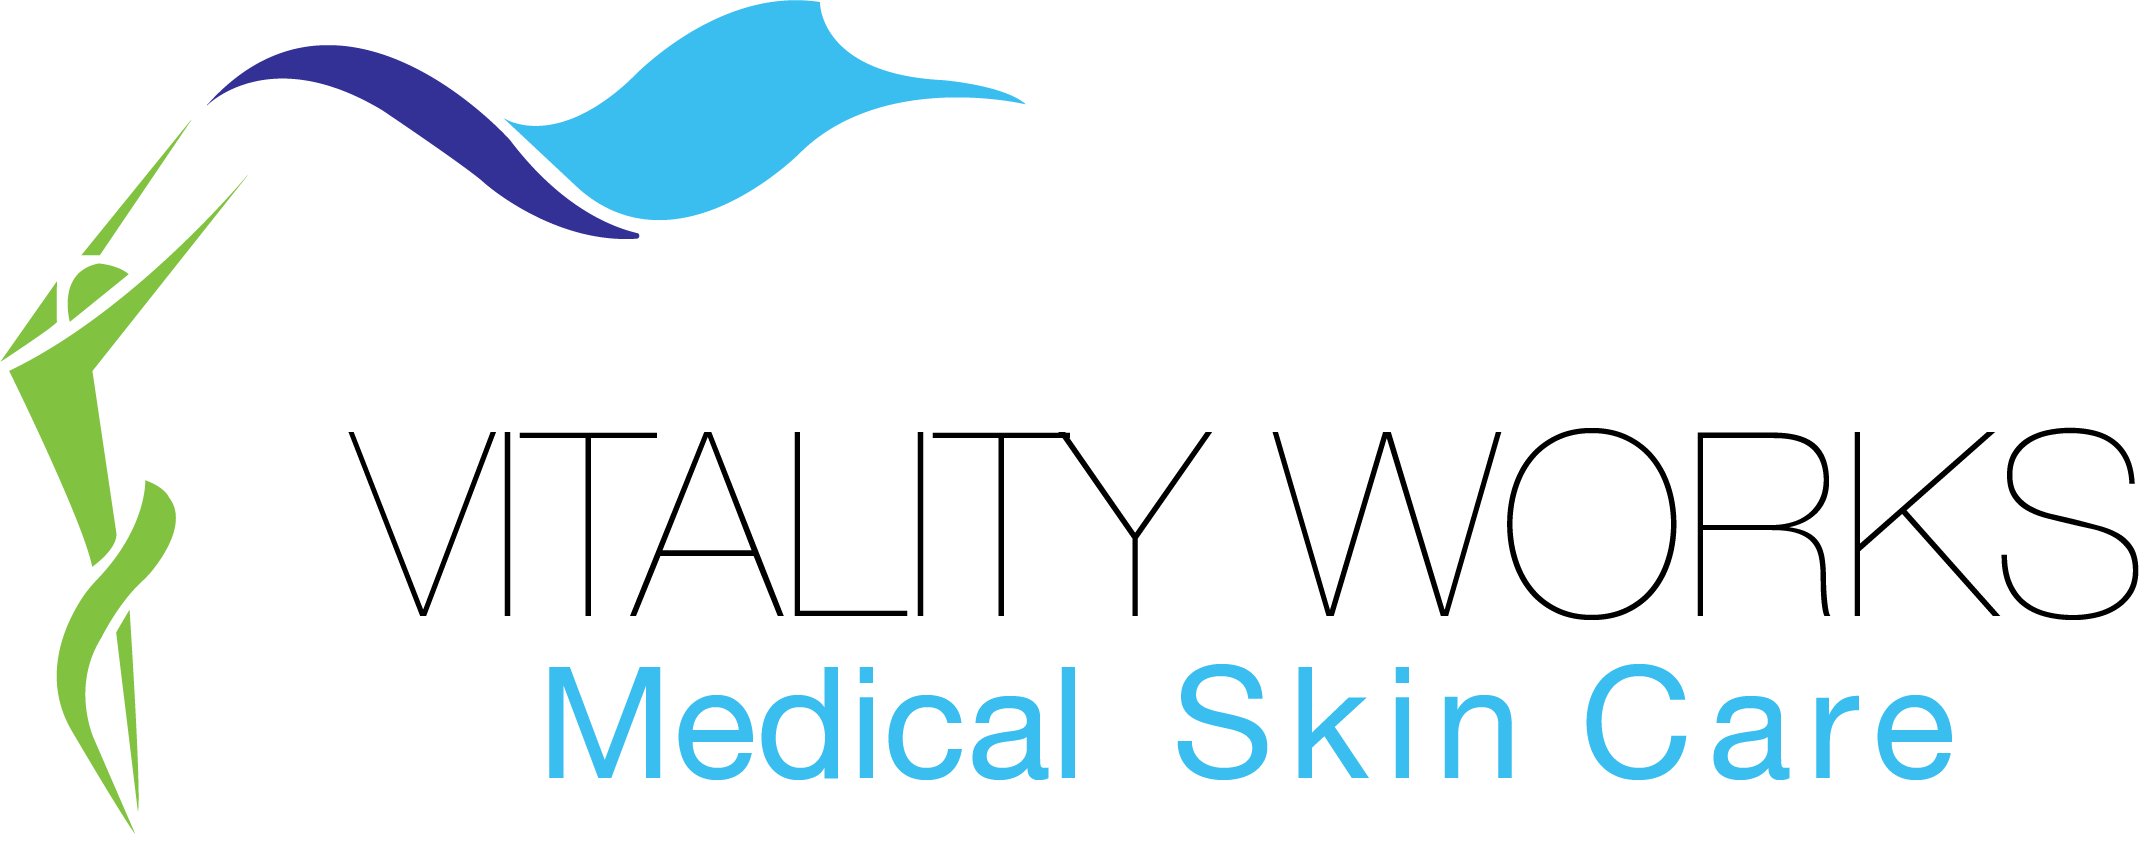 Vitality Works Medical Skin Care